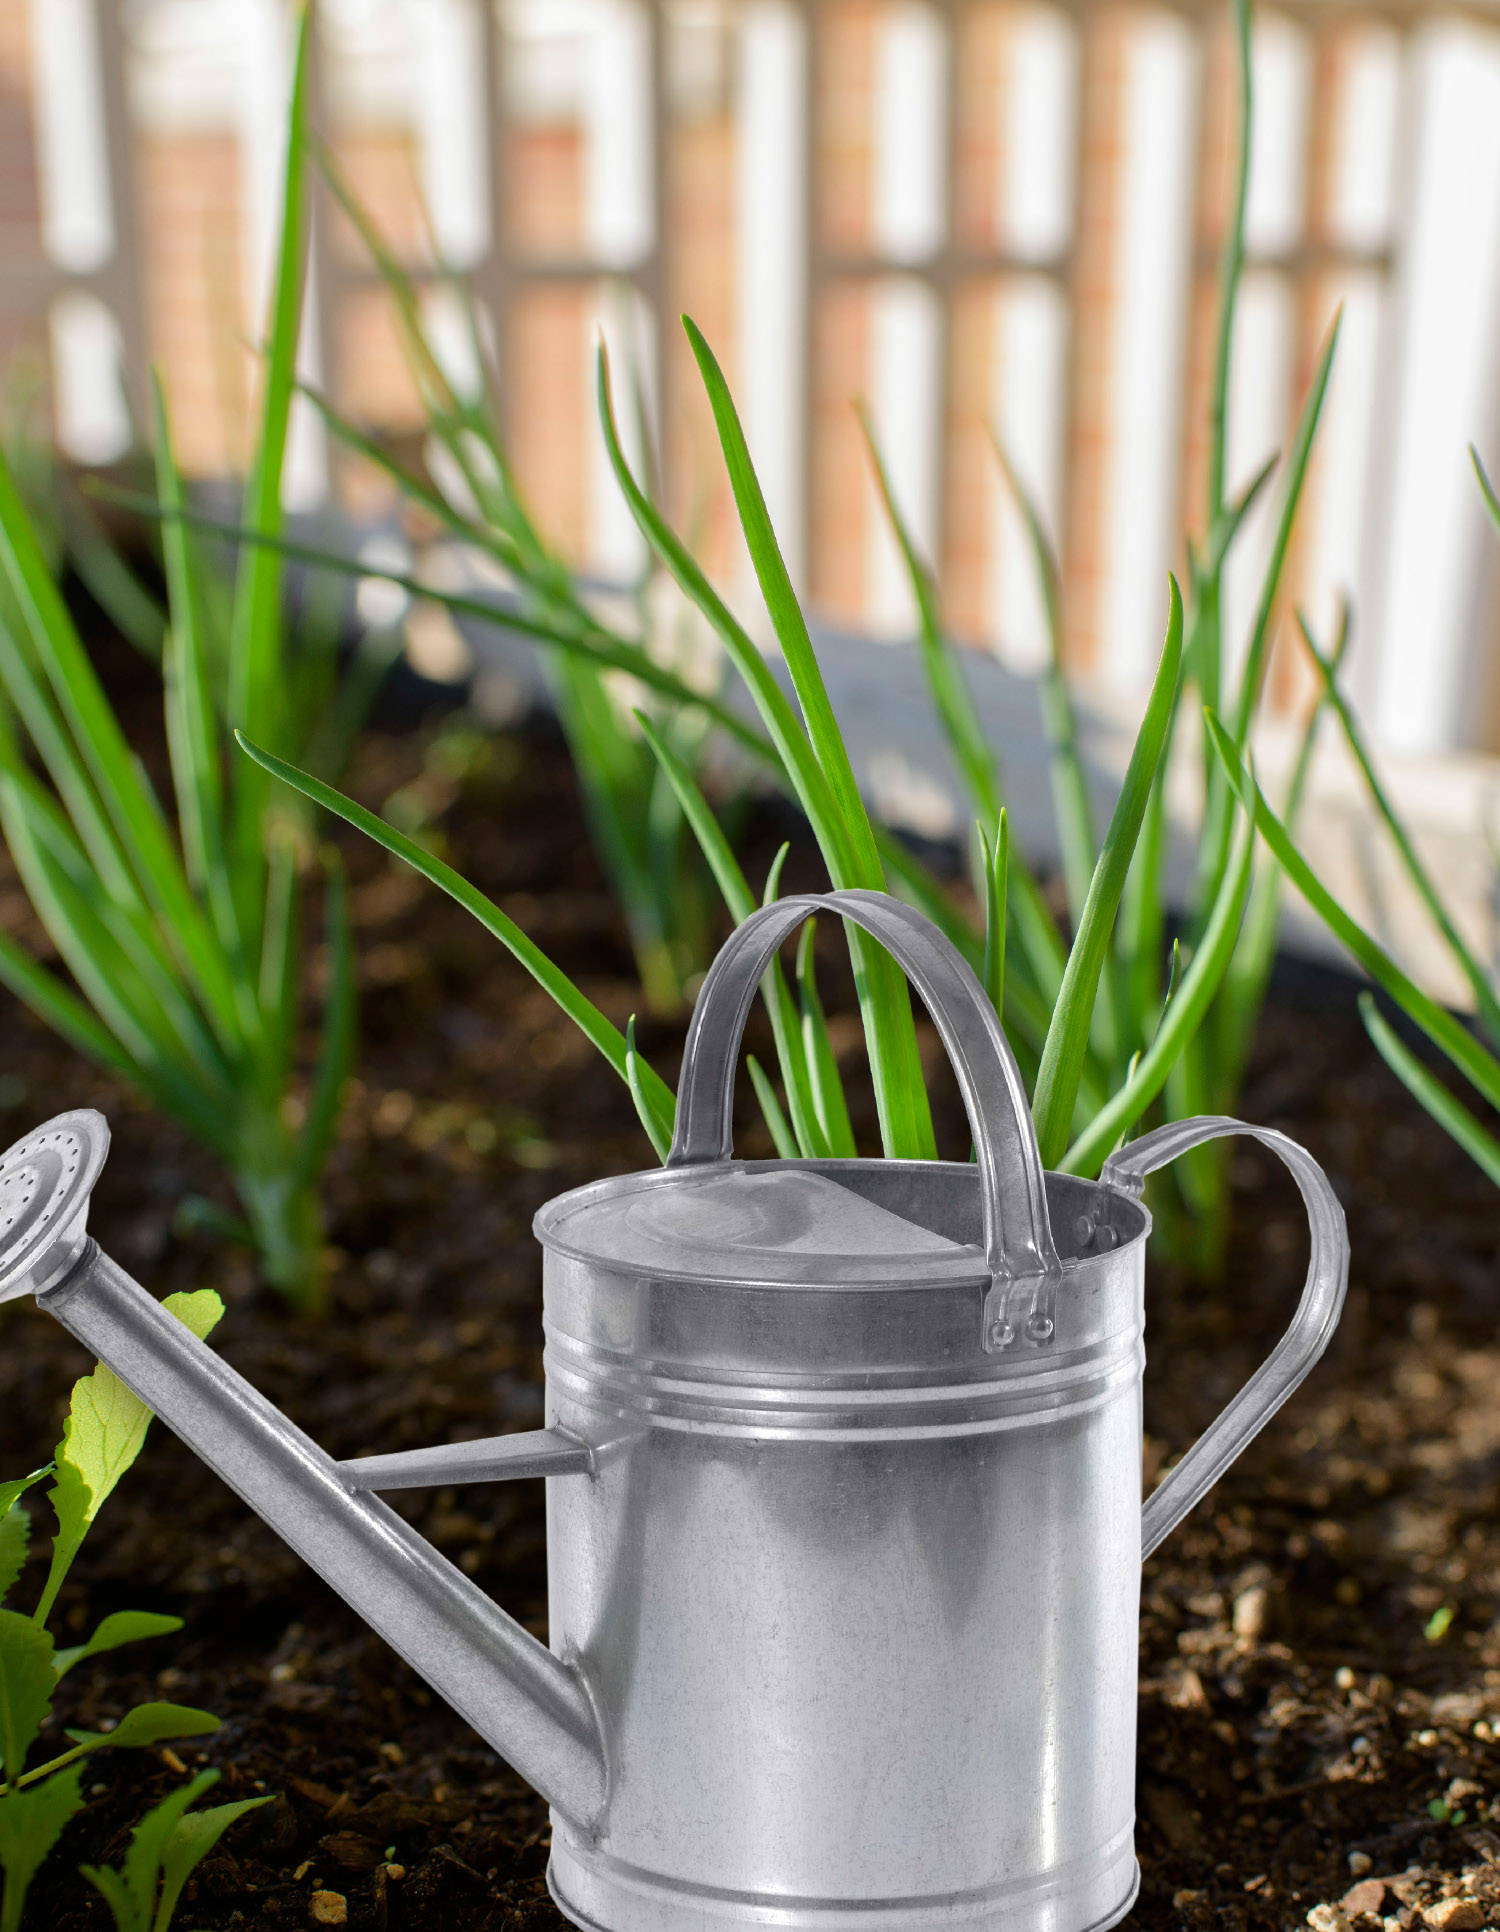 A metal watering can sits among green onions on a salad table.